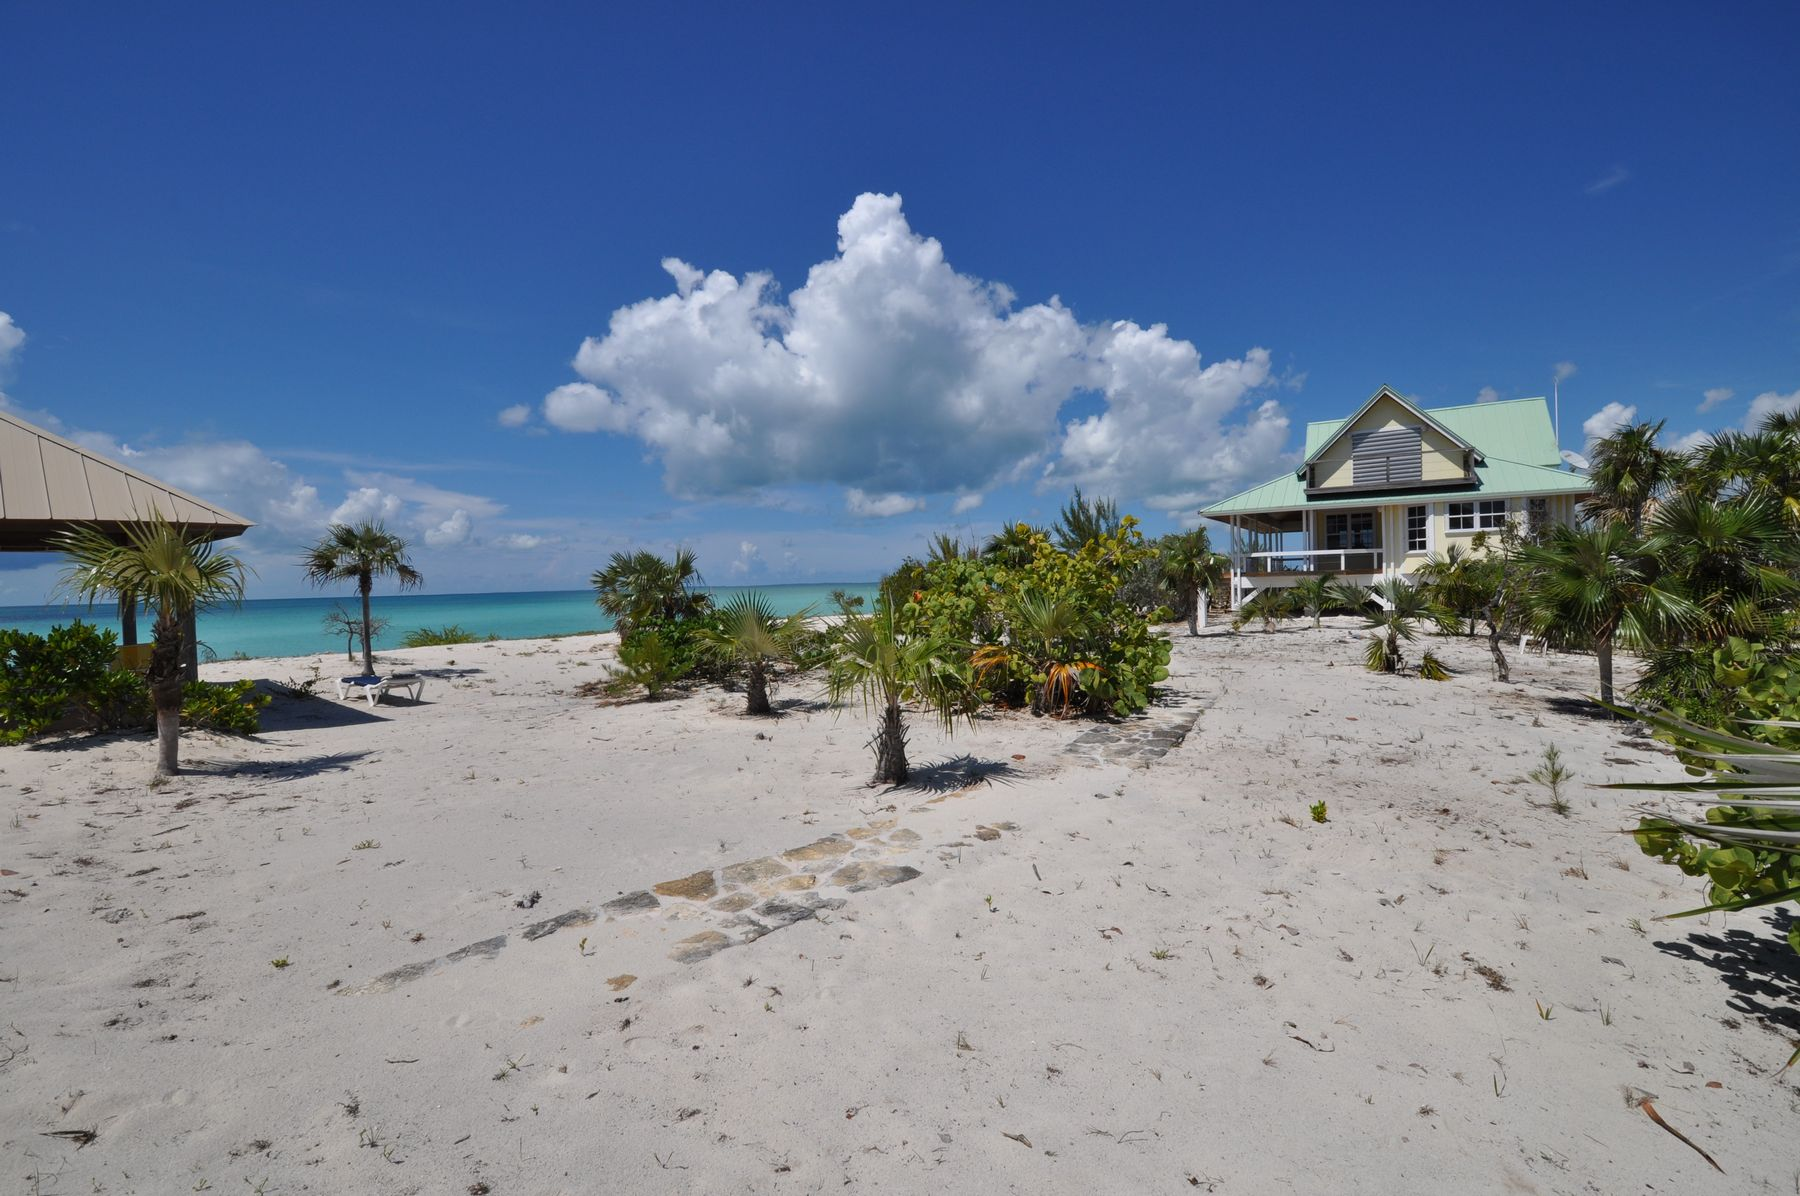 Single Family Home for Sale at Hawk's Nest Beachfront Property Cat Island, Cat Island Bahamas